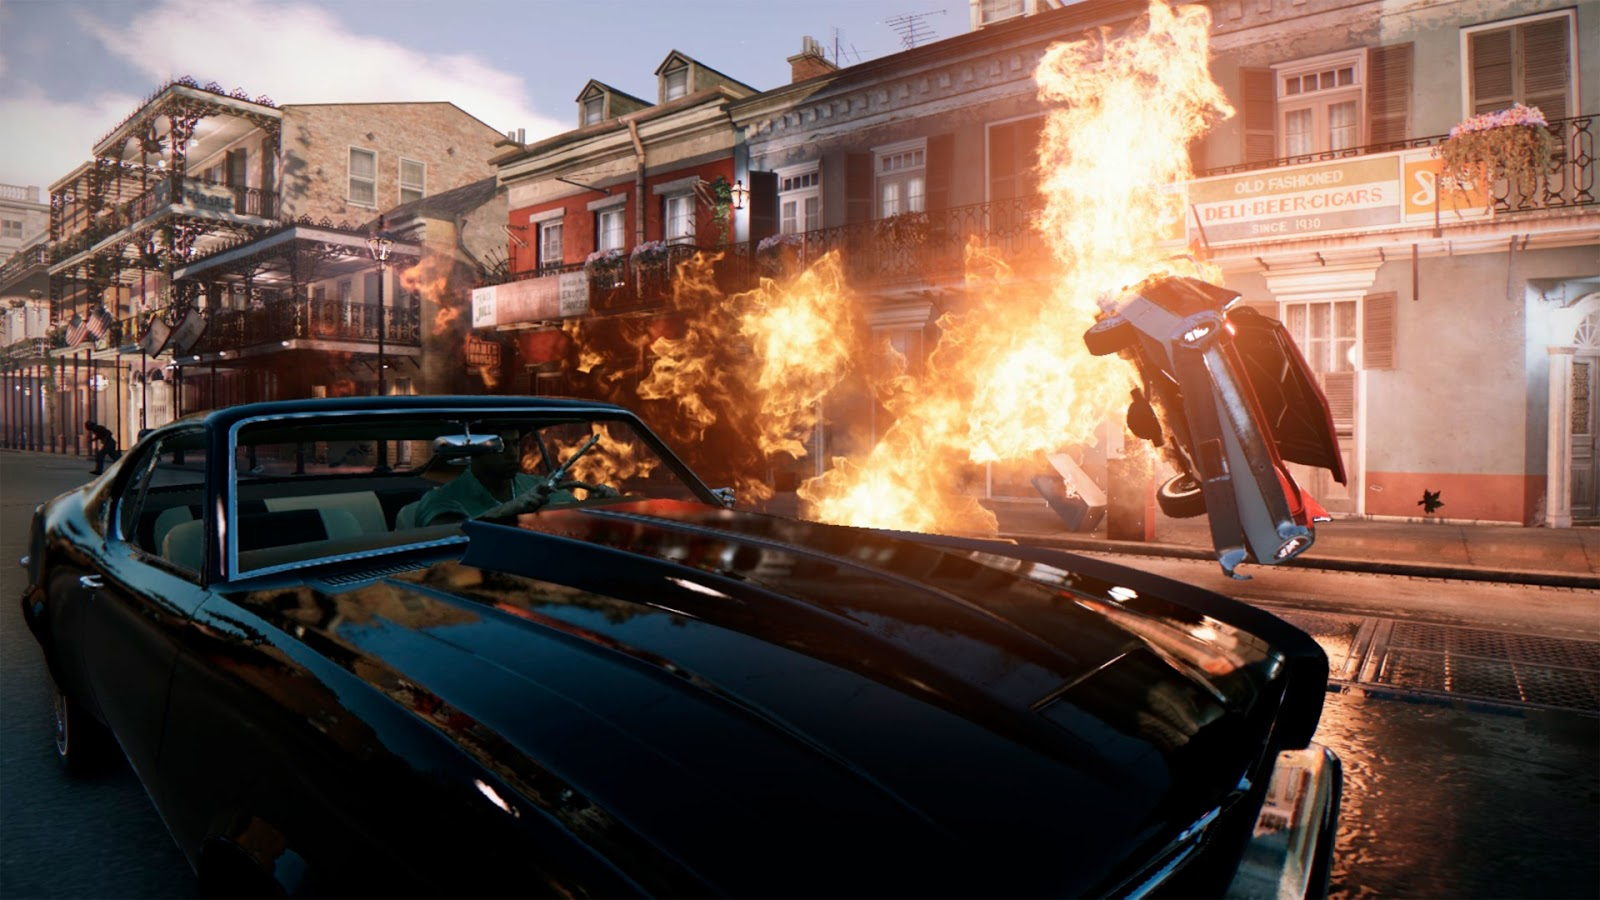 MAFIA 3 hot game hd wallpaper 1920x1080